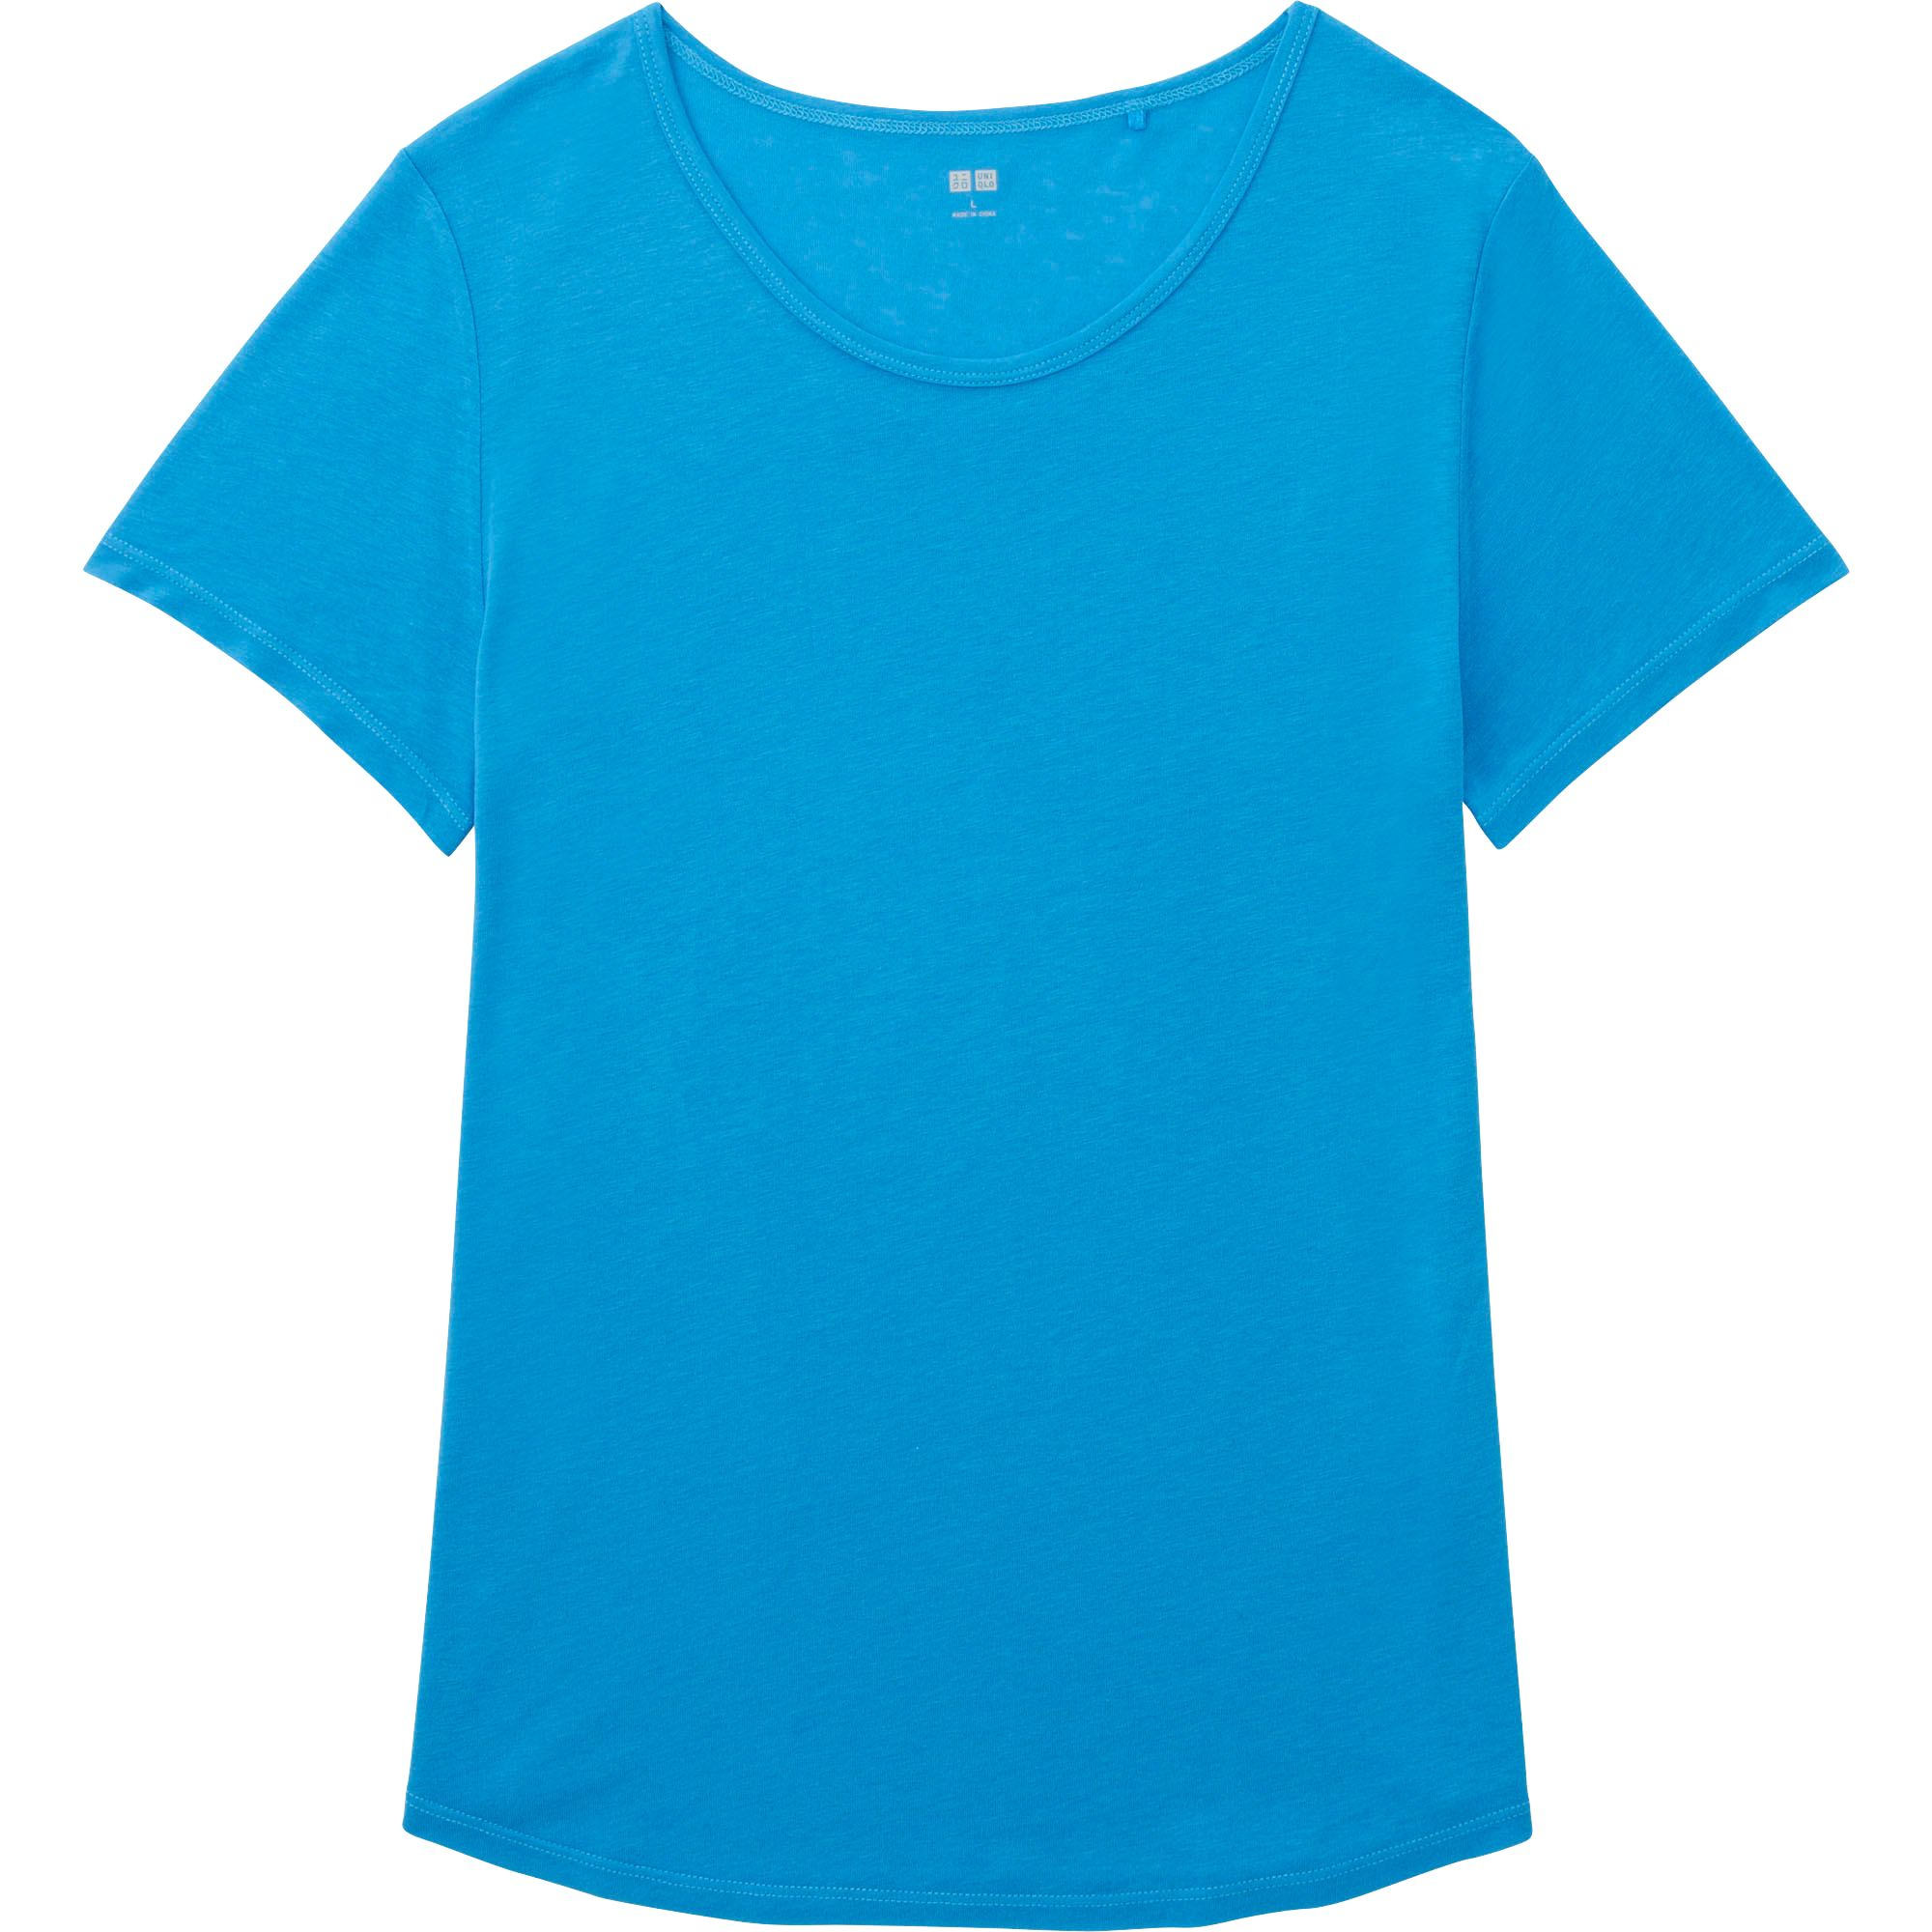 Uniqlo Women 39 S Modal Linen T Shirt In Blue For Men Save